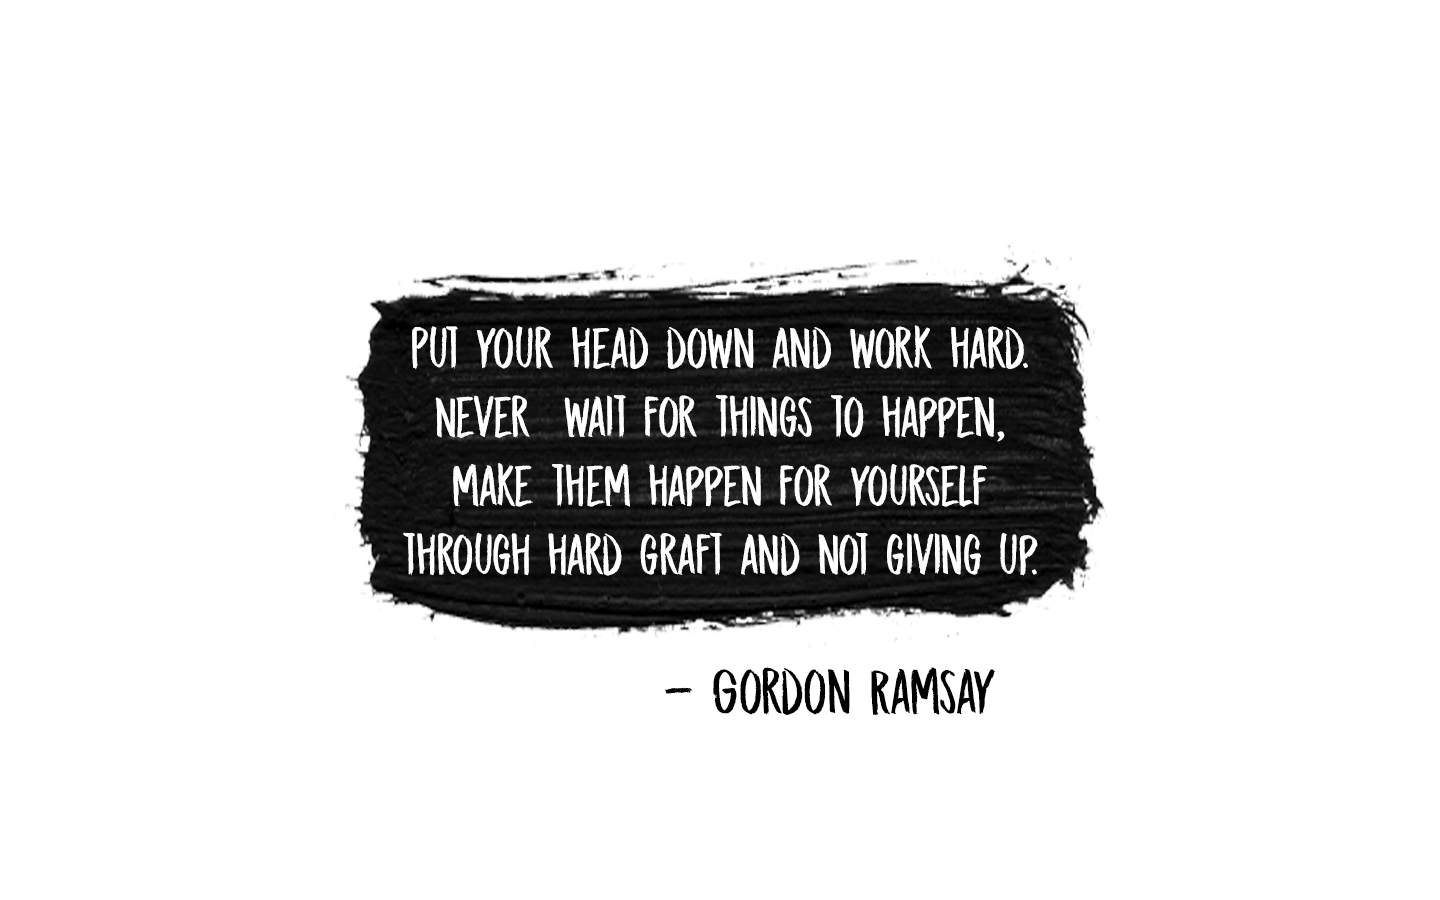 Never wait for things to happen [image]